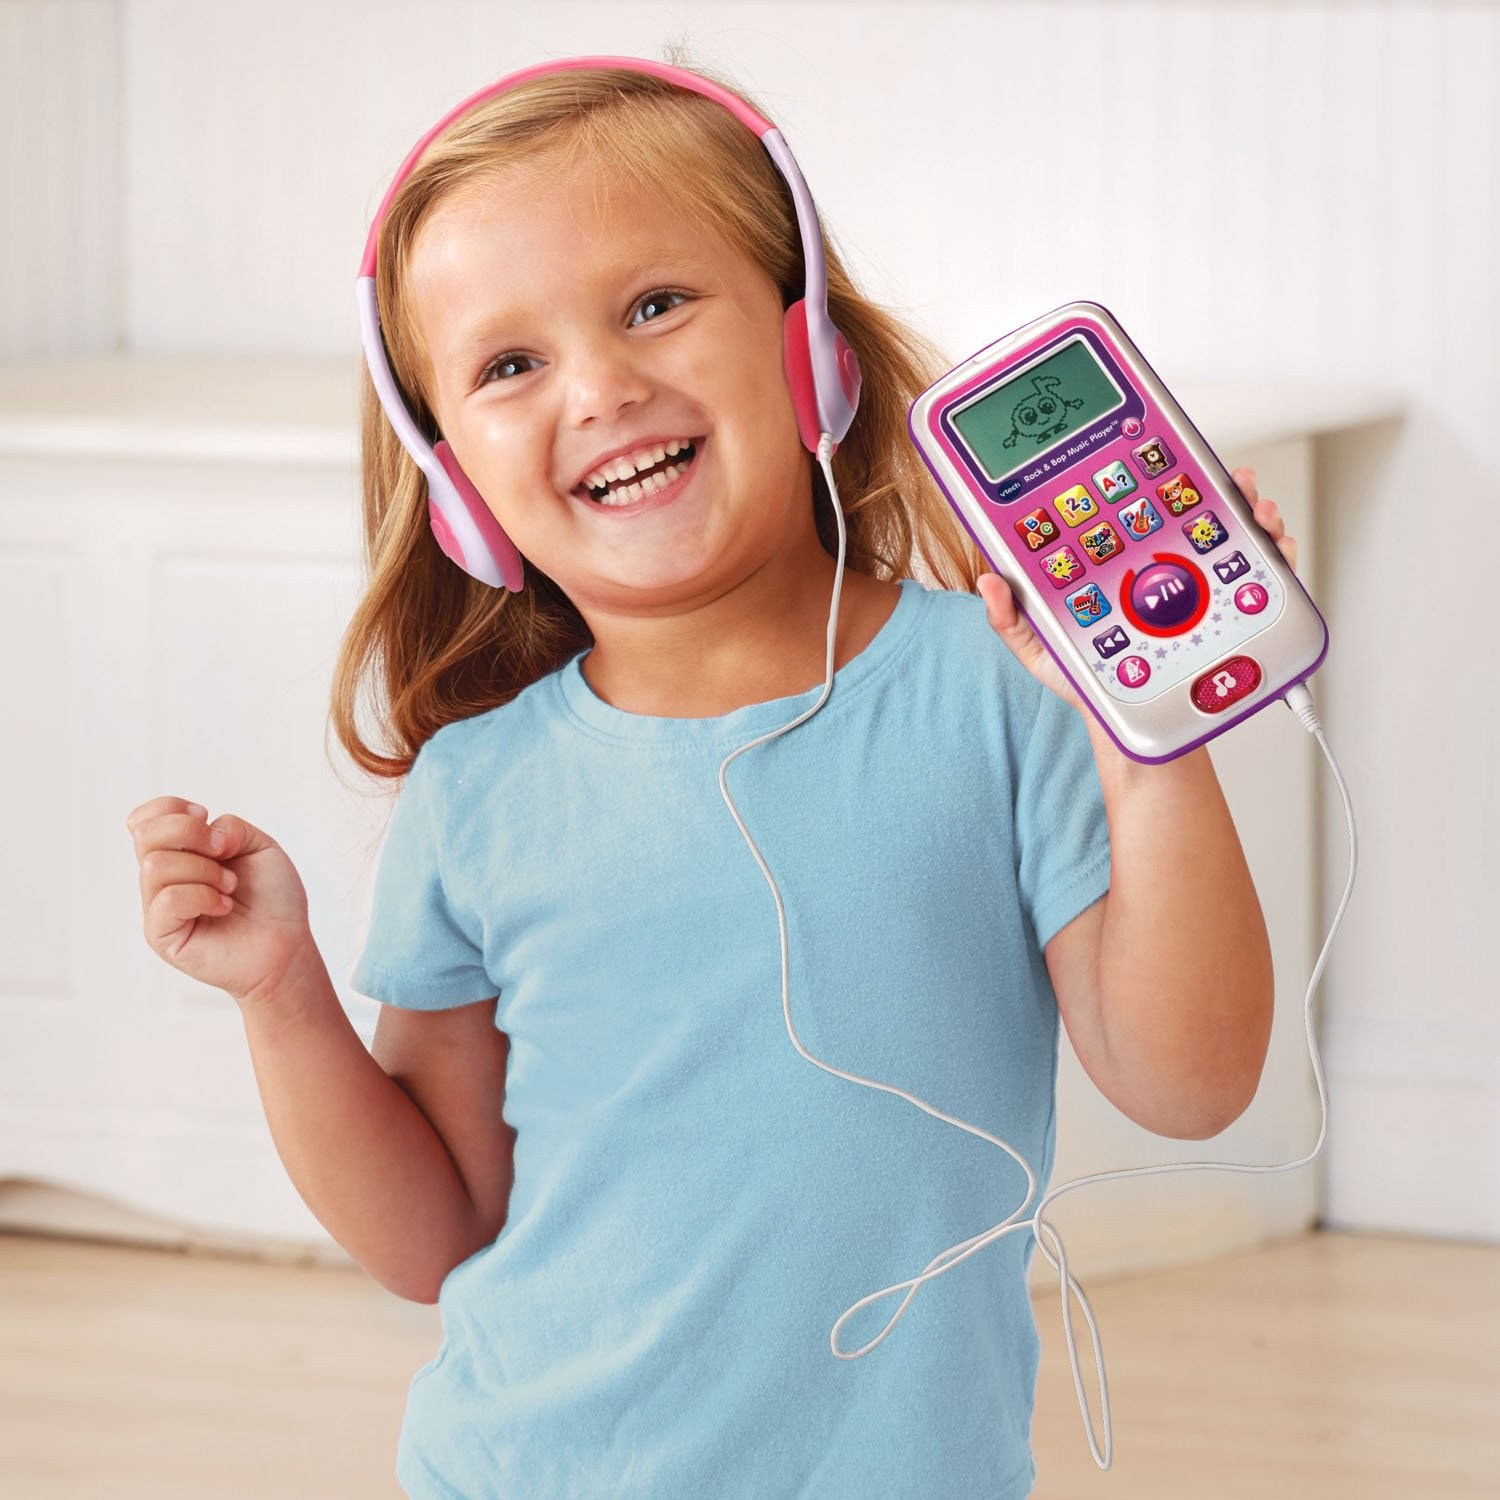 VTech Rock and Bop Music Player Amazon Exclusive, Pink by VTech (Image #5)